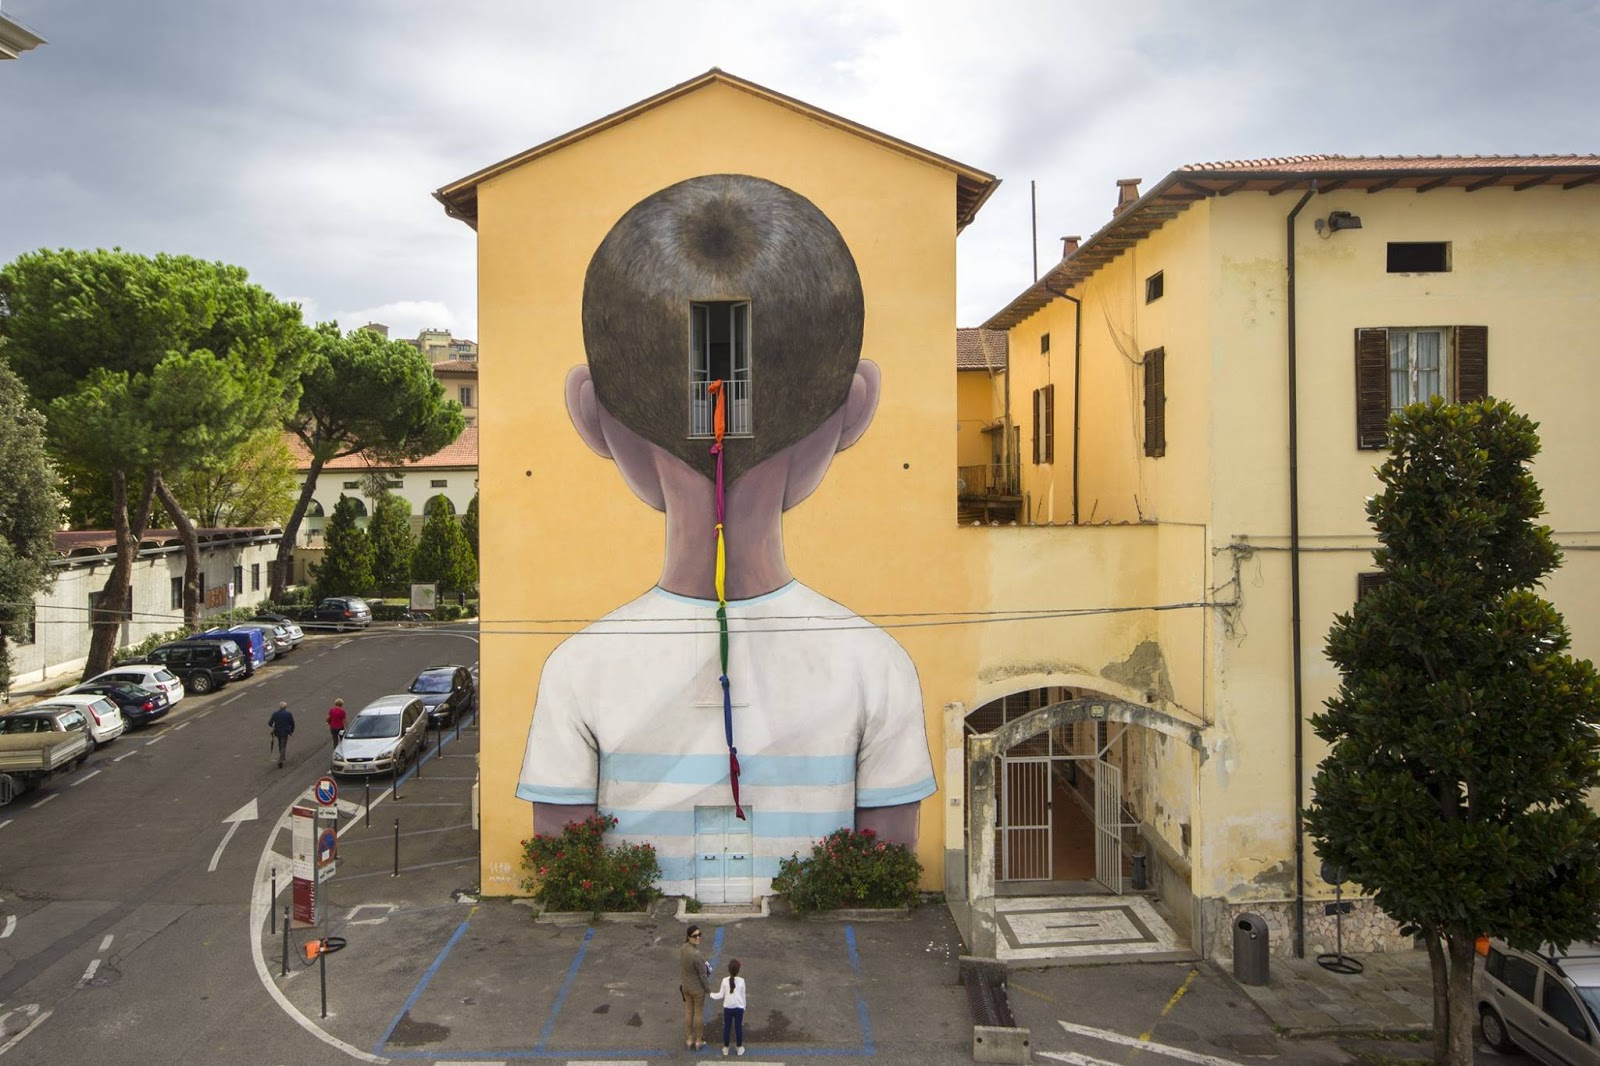 A mural in Arezzo, Italy